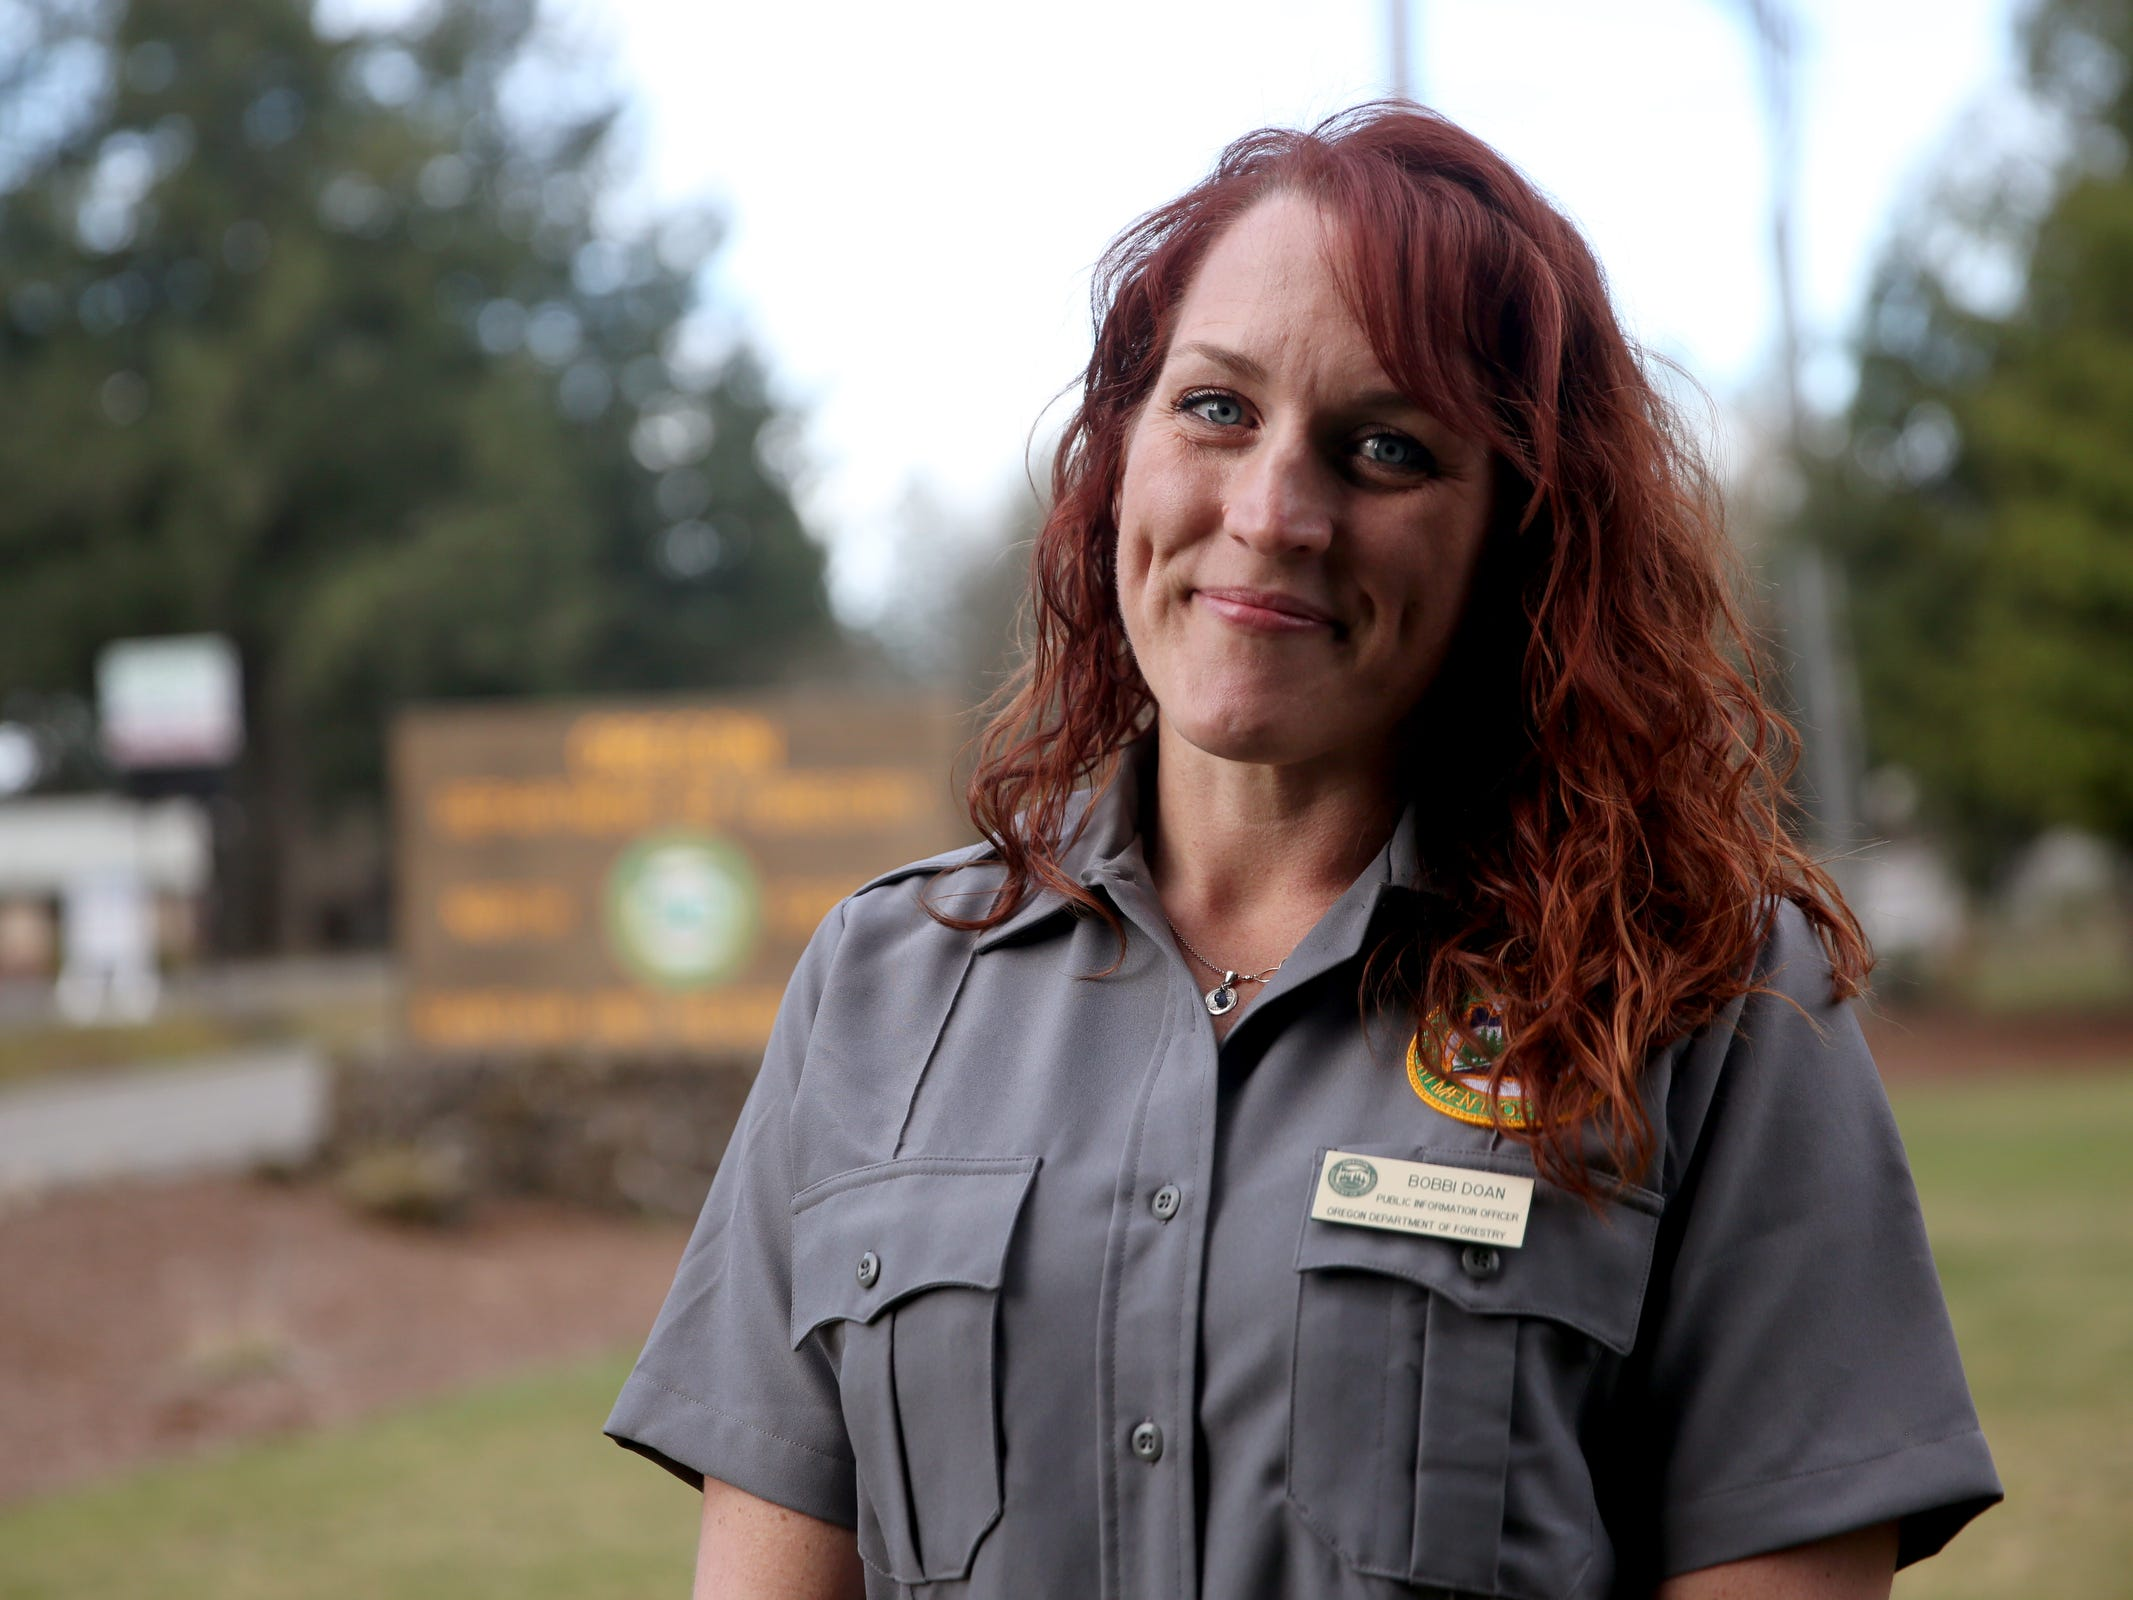 Bobbi Doan a public information officer with the Oregon Department of Forestry stands for a photo at the ODF Santiam Unit office as a wildfire that began Tuesday continues to burn in the North Santiam State Recreation Area in near Lyons on March 20, 2019. The fire has forced evacuations in Marion and Linn counties.